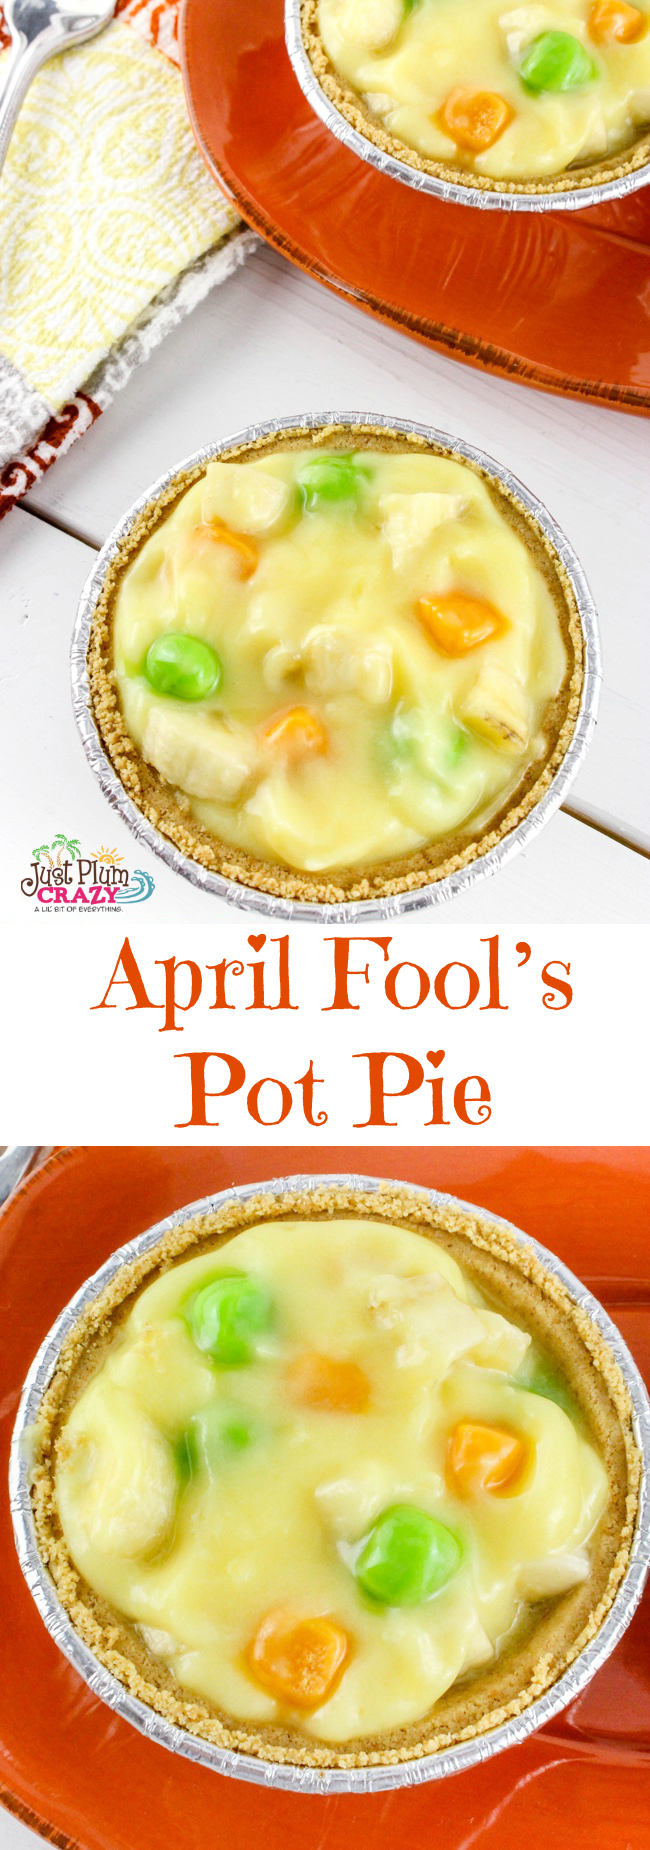 We've seen April Fool's pranks of all kinds, sugar in the salt-shaker, salt in the sugar container, going into labor, & April Fool's Pot Pie Recipe.